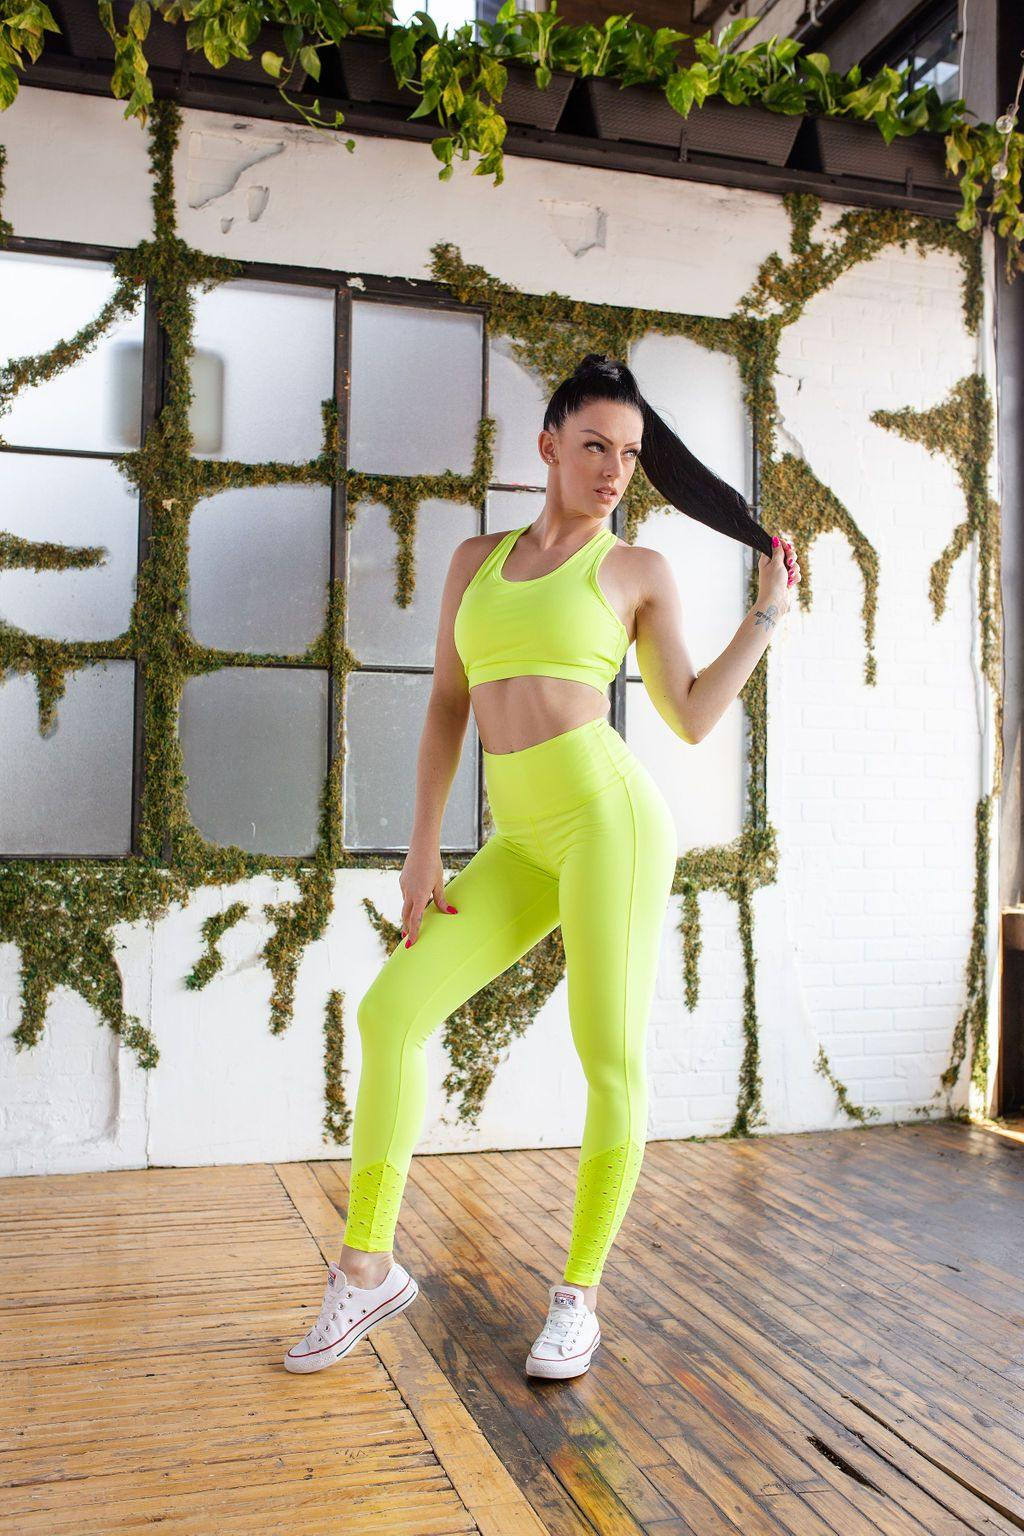 NEON YELLOW HW LASER CUT LEGGING - (only x1 M left!)